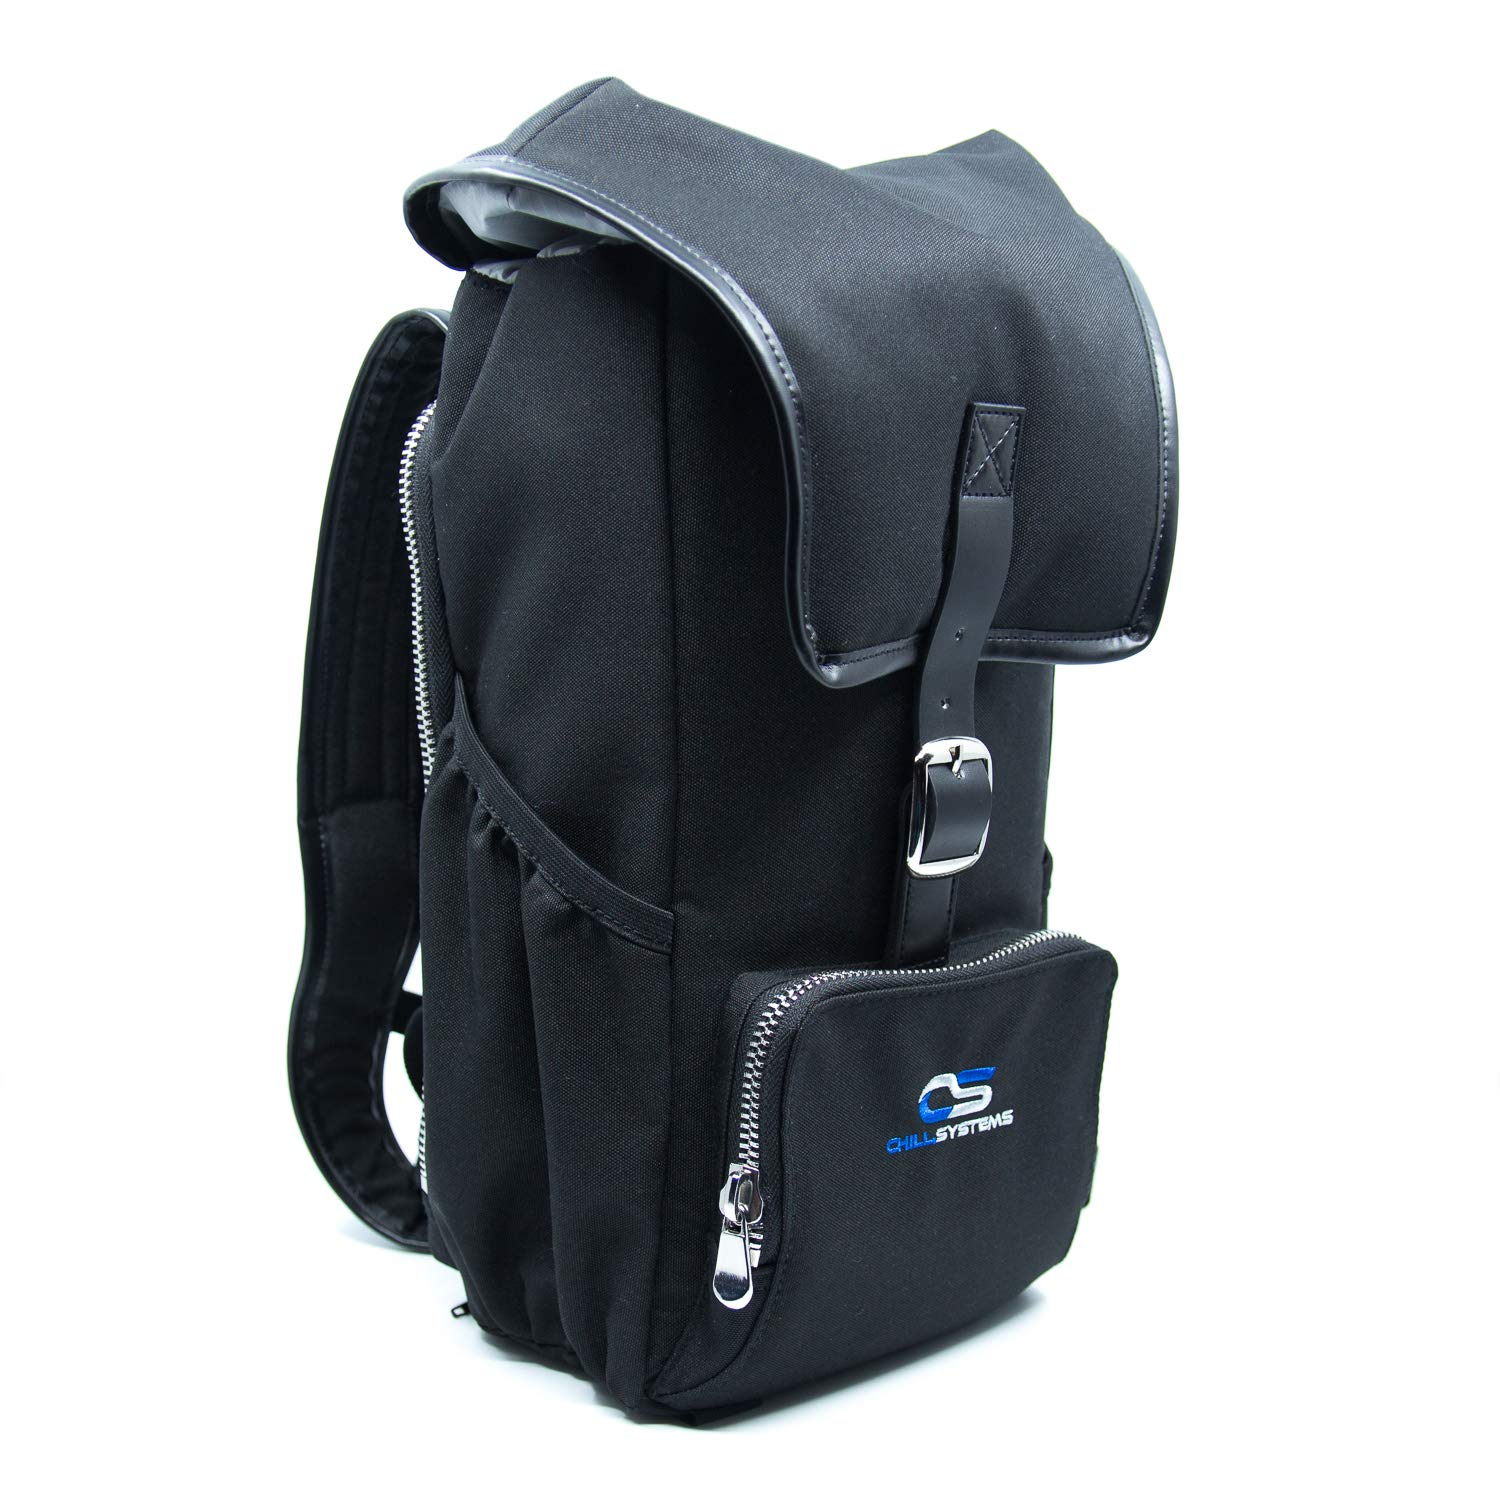 Chill Systems The Chiller's Pack Drink-Cooling Backpack